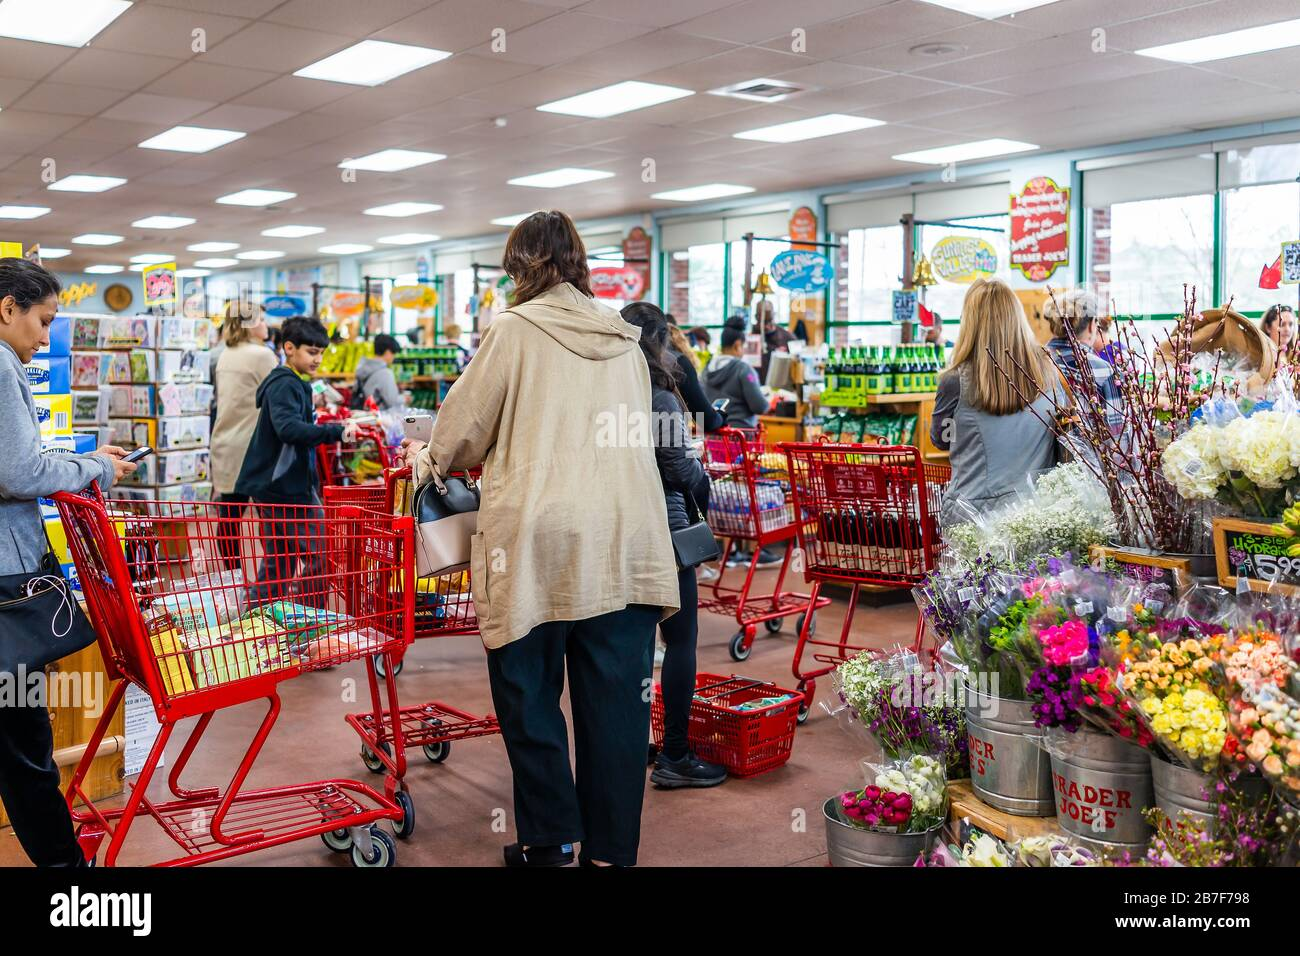 Reston, USA - March 13, 2020: Long lines in Trader Joe's store, people by shopping cart buying grocery products, paying at cashier registers in prepar Stock Photo